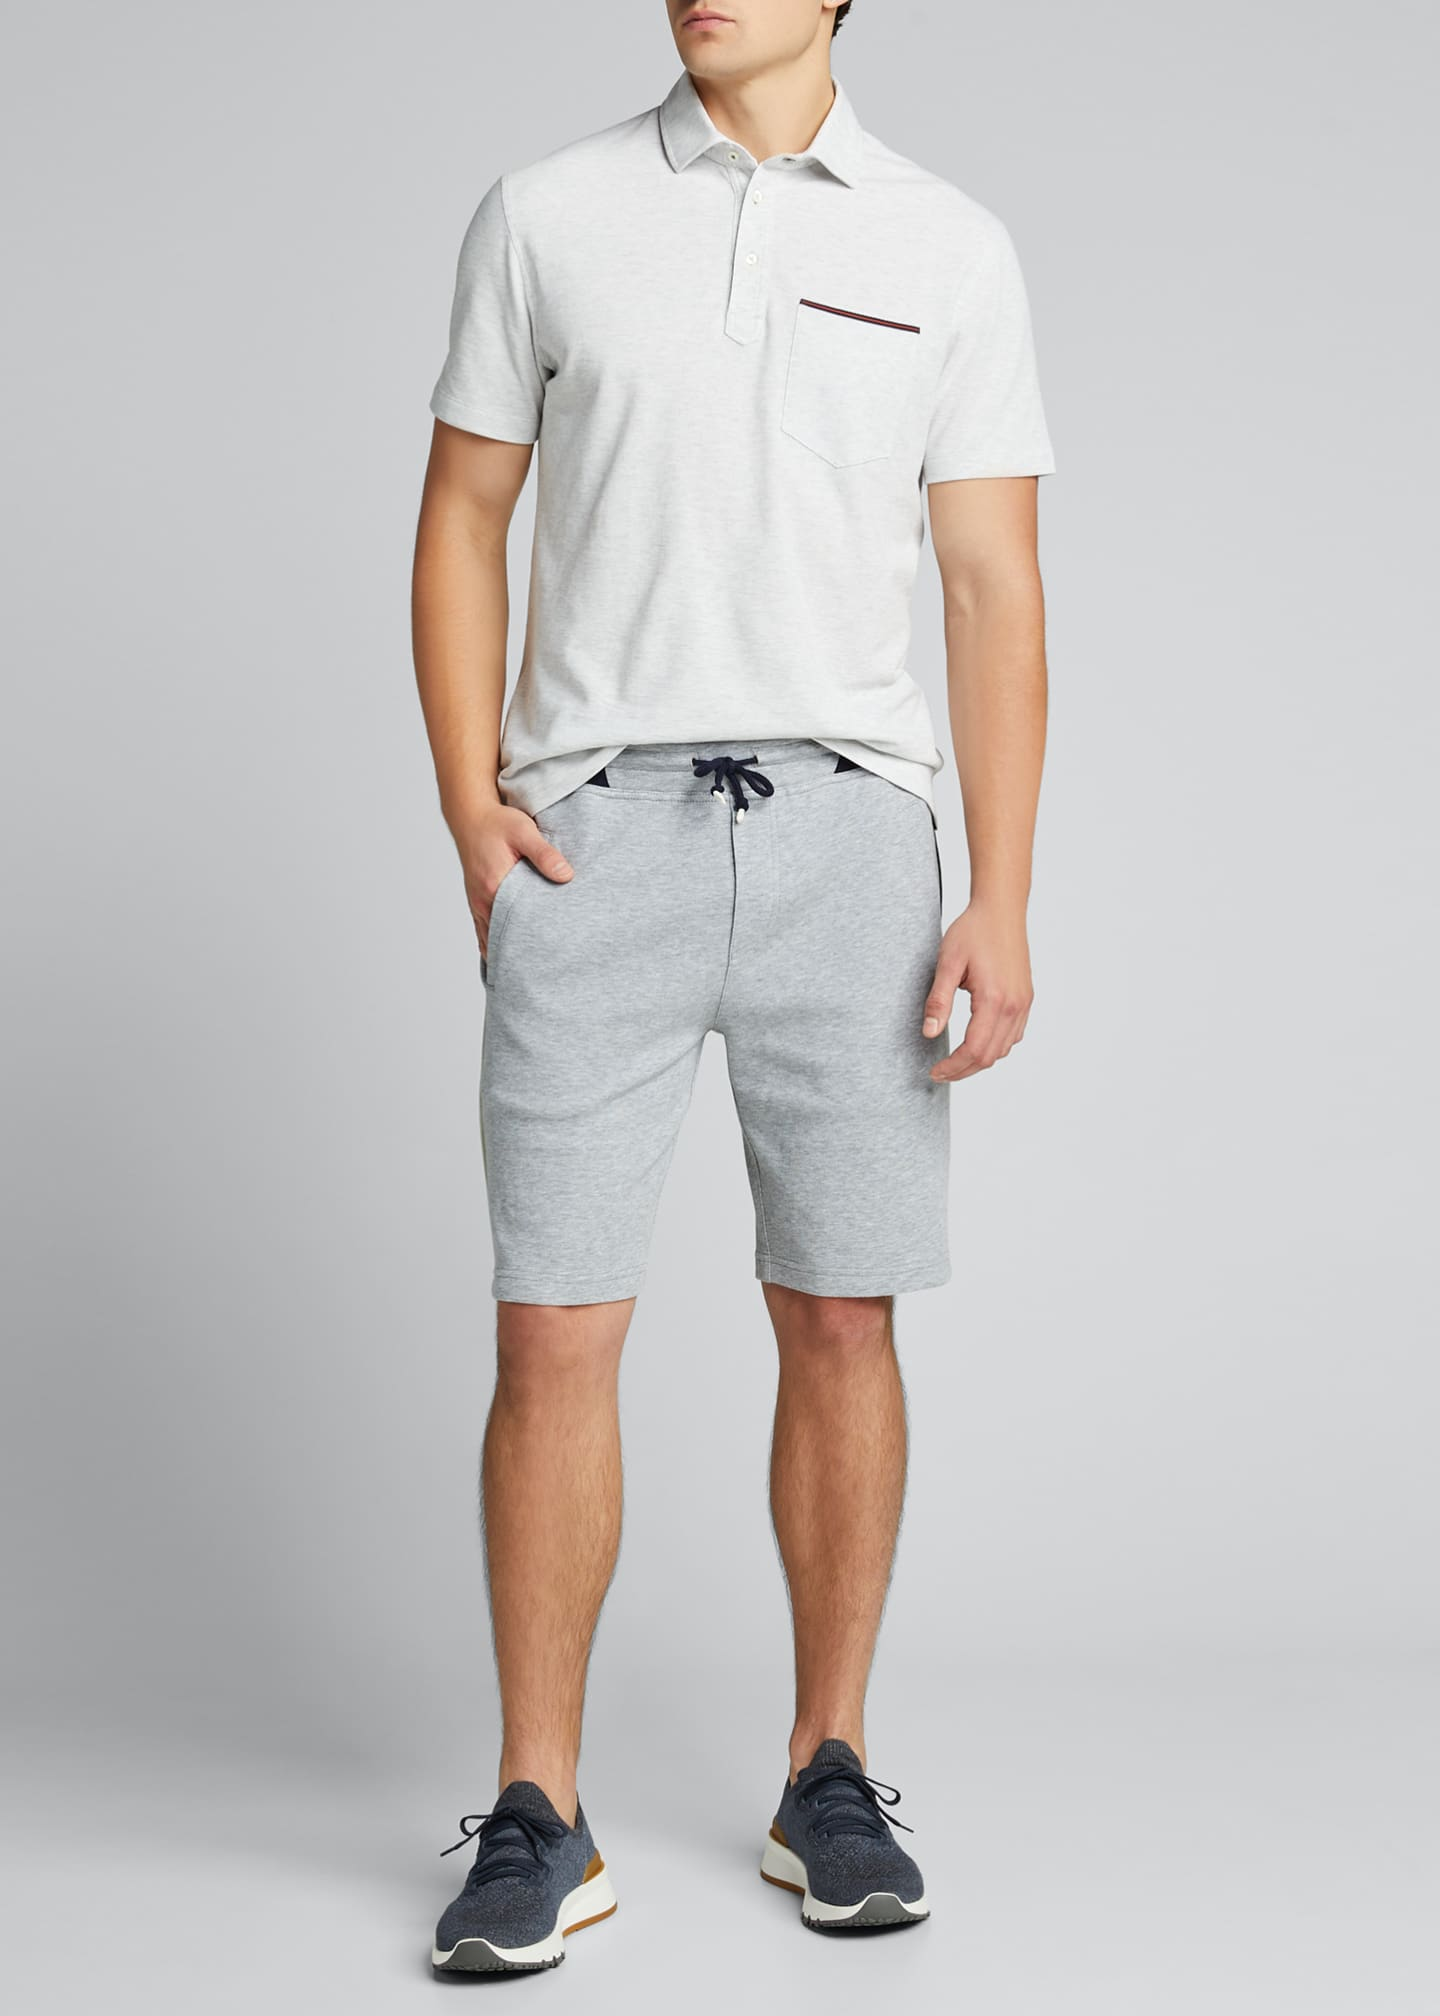 Image 1 of 5: Men's Colorblock Knit Bermuda Shorts